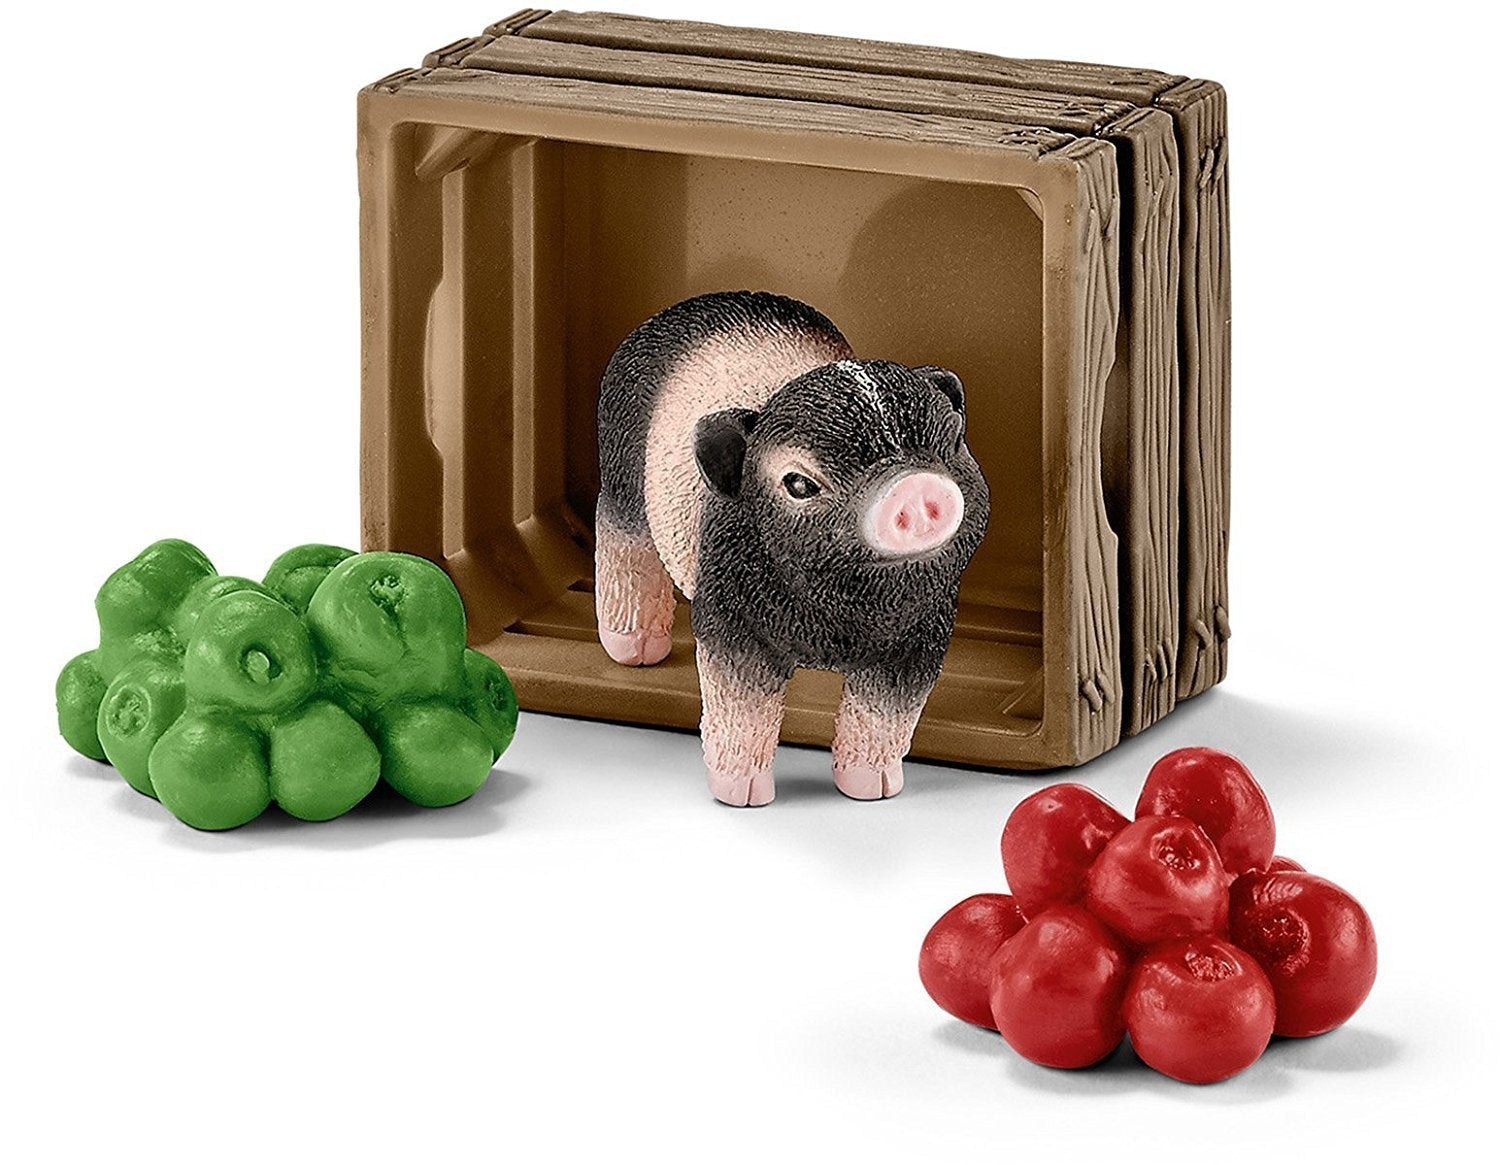 Schleich 42292 Mini Pig with Apples and crate available at Little Sprout